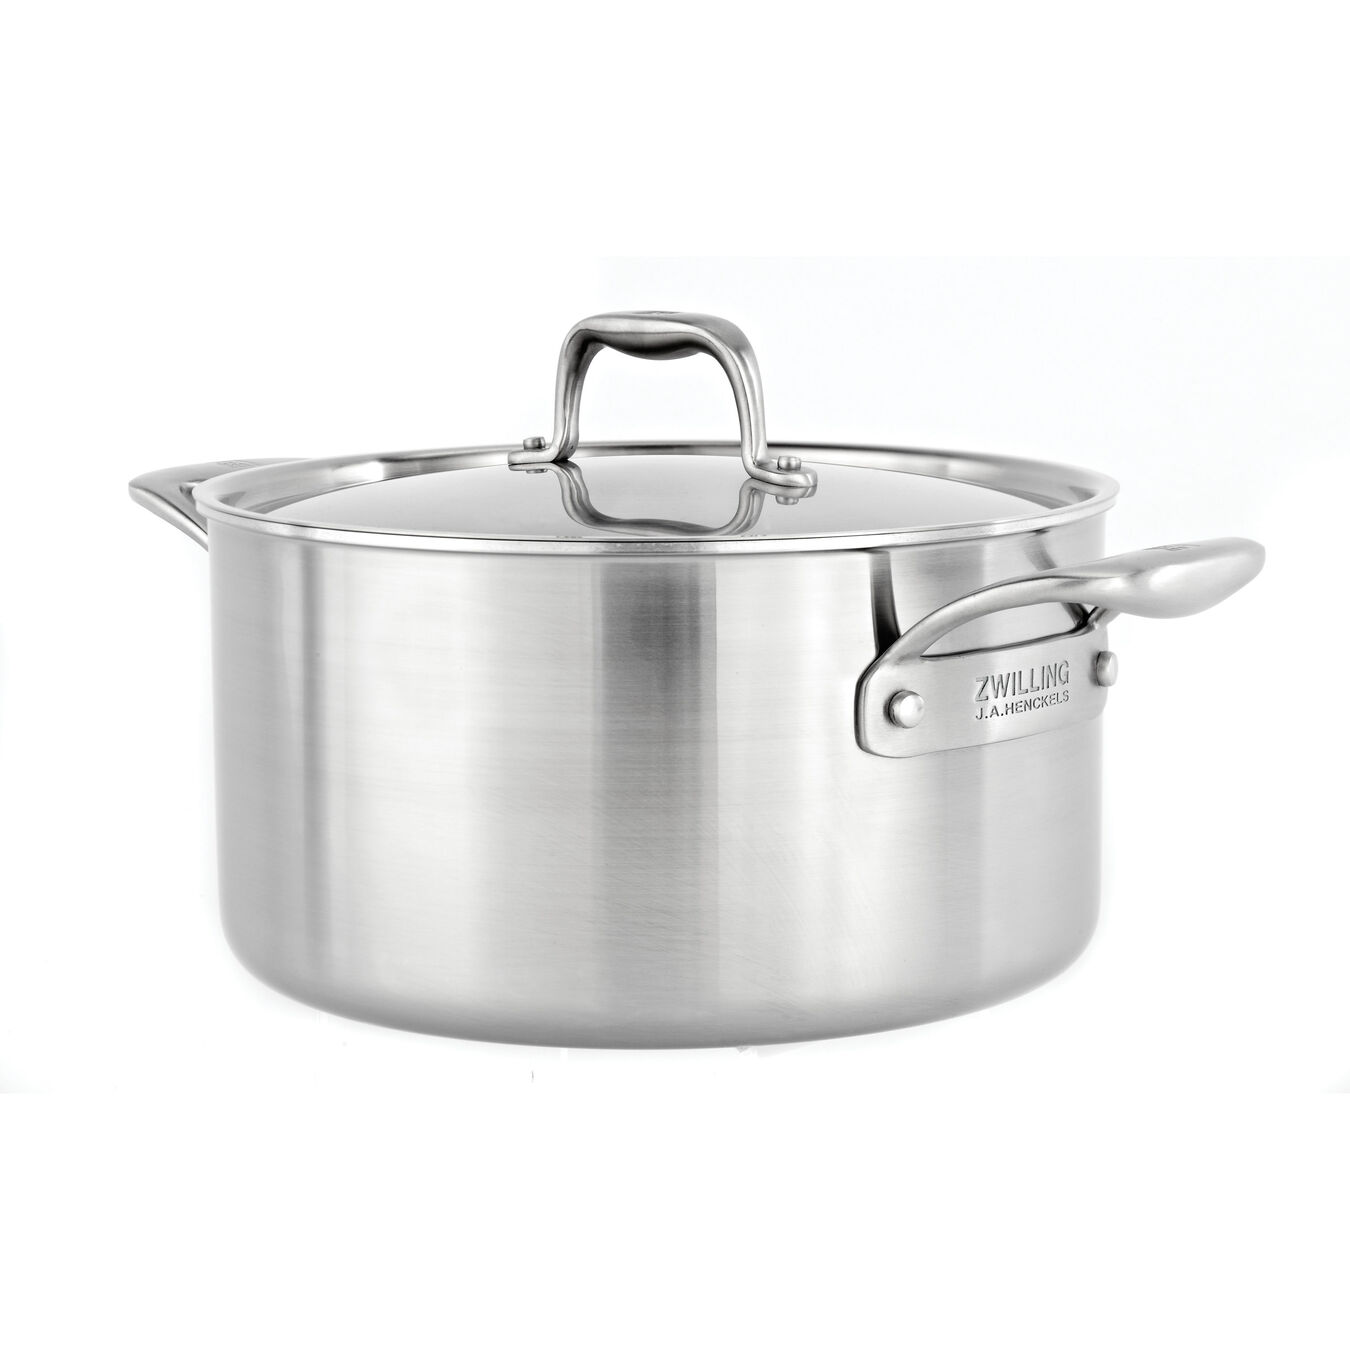 5.7L18/10 STAINLESS STEEL stock pot with ceramic non-stick coating,,large 1